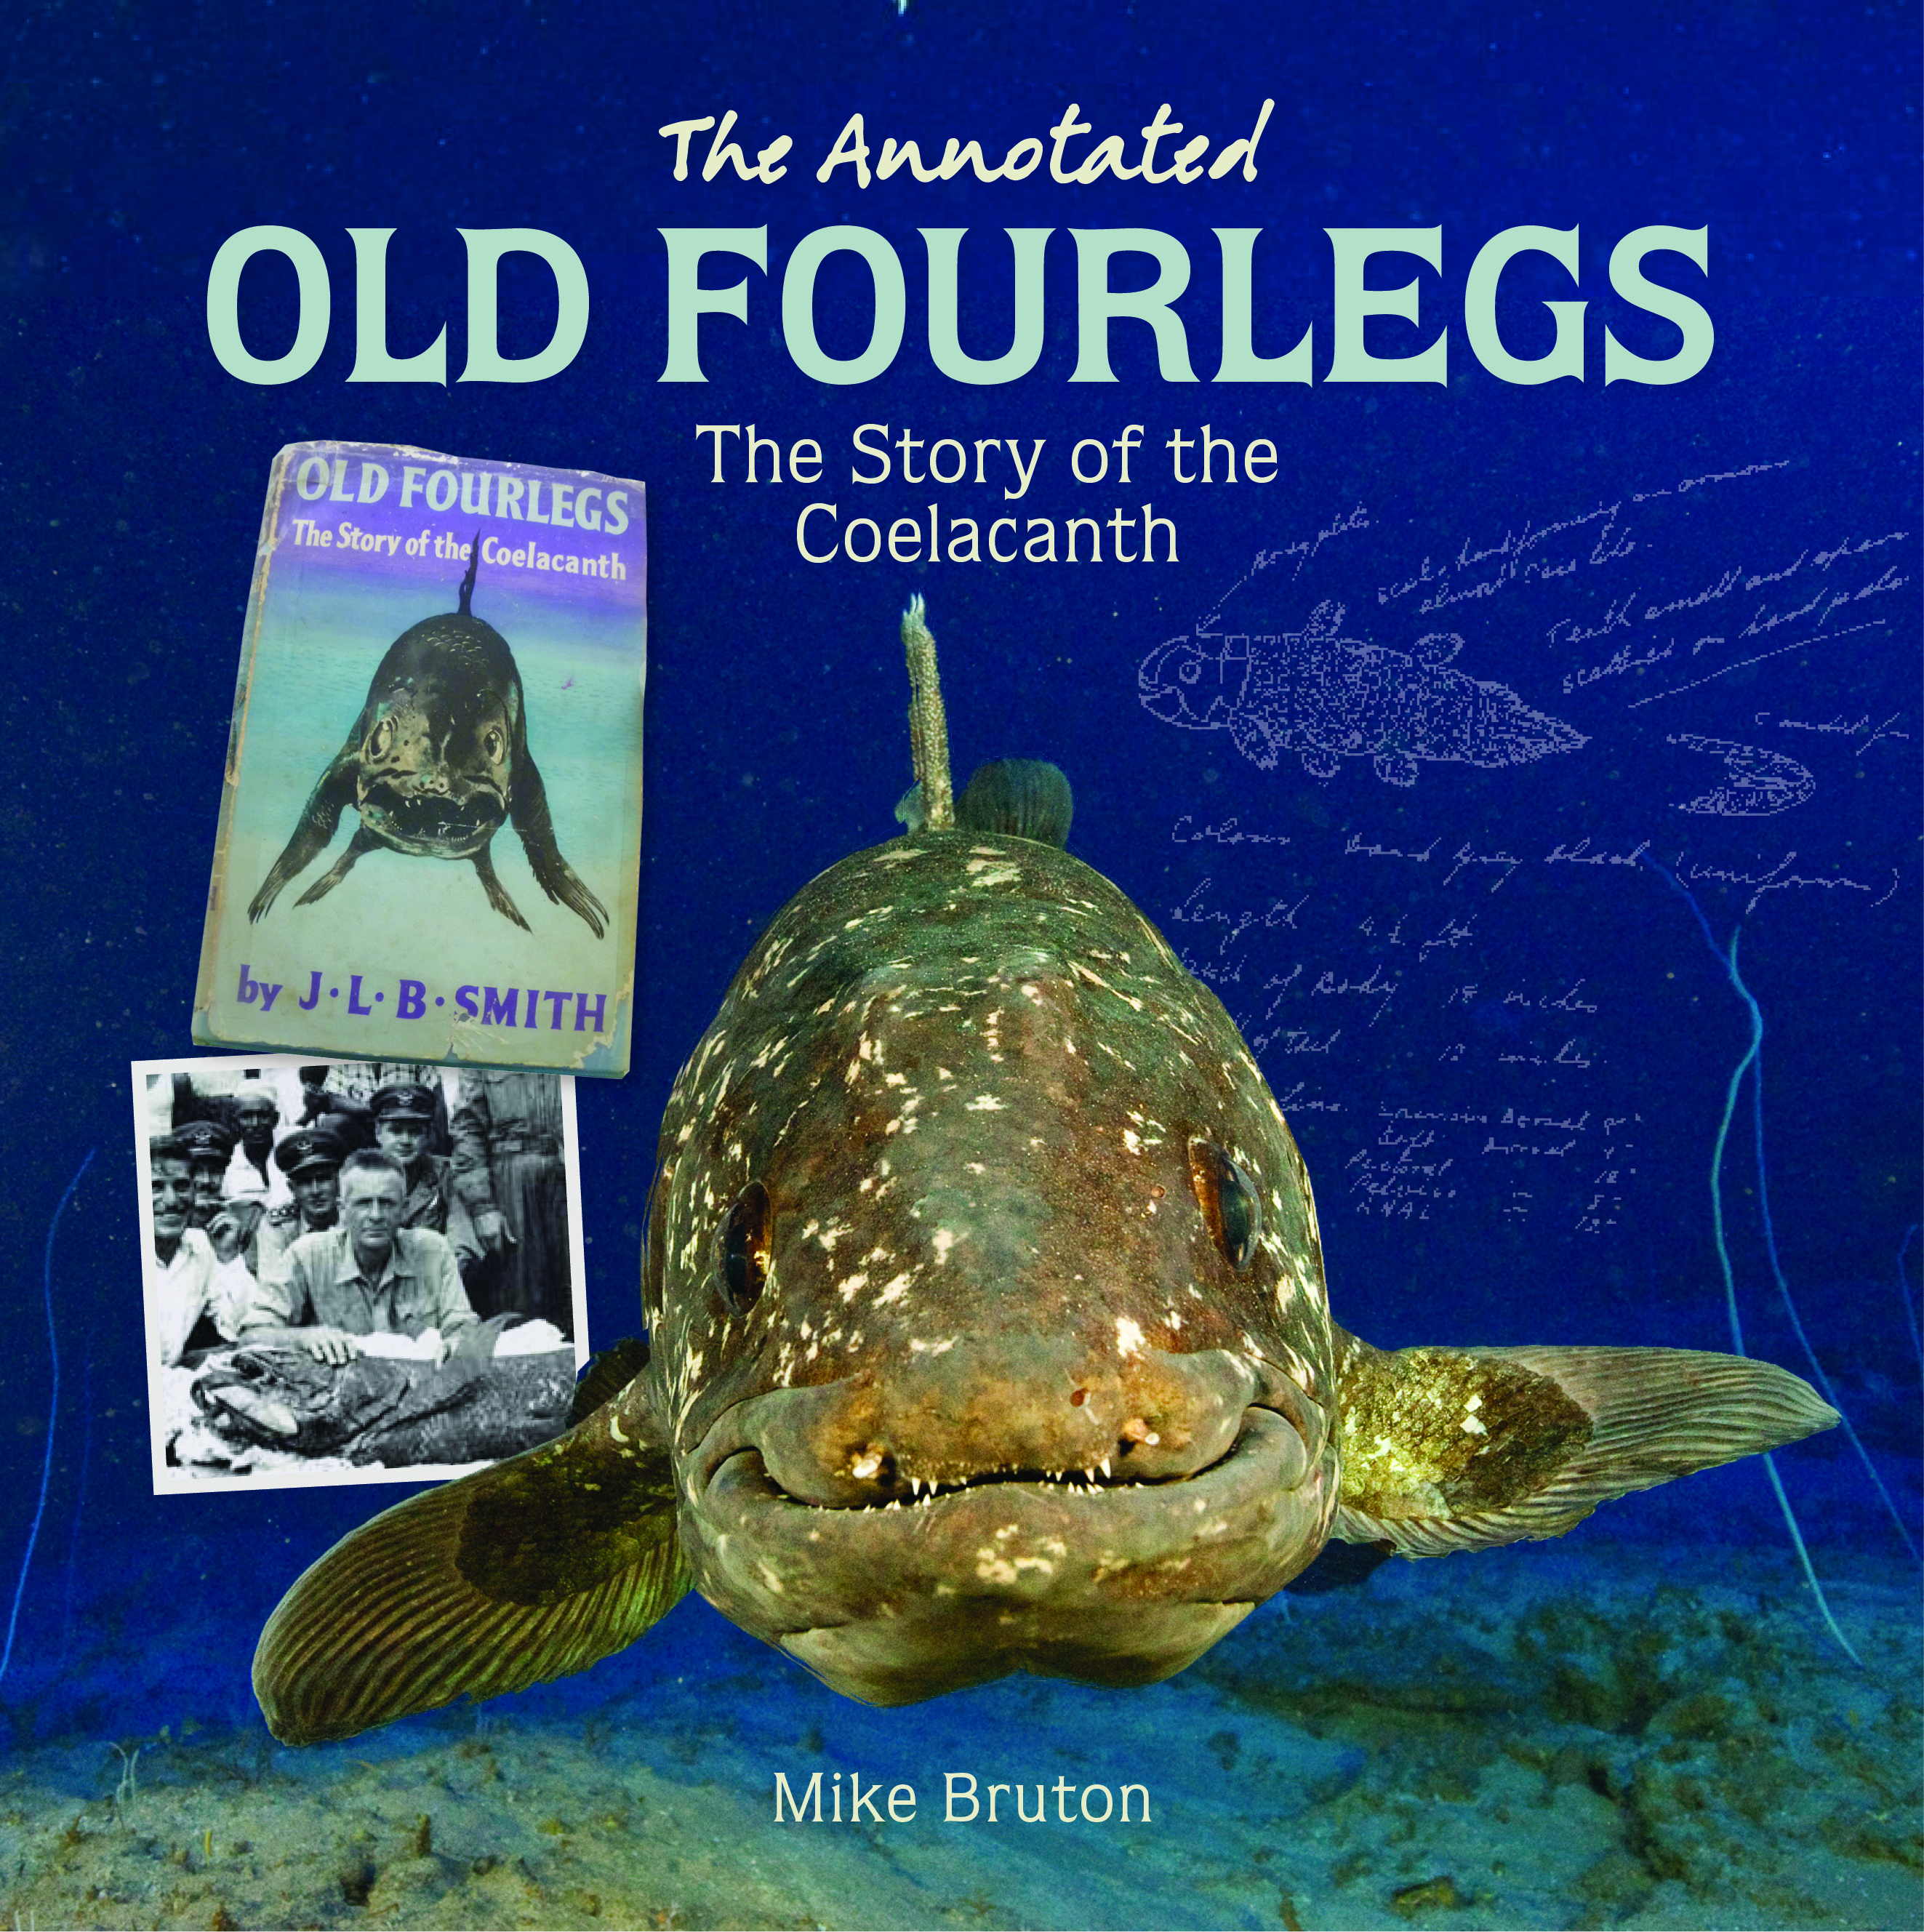 The Annotated Old Fourlegs: The story of the coelacanth